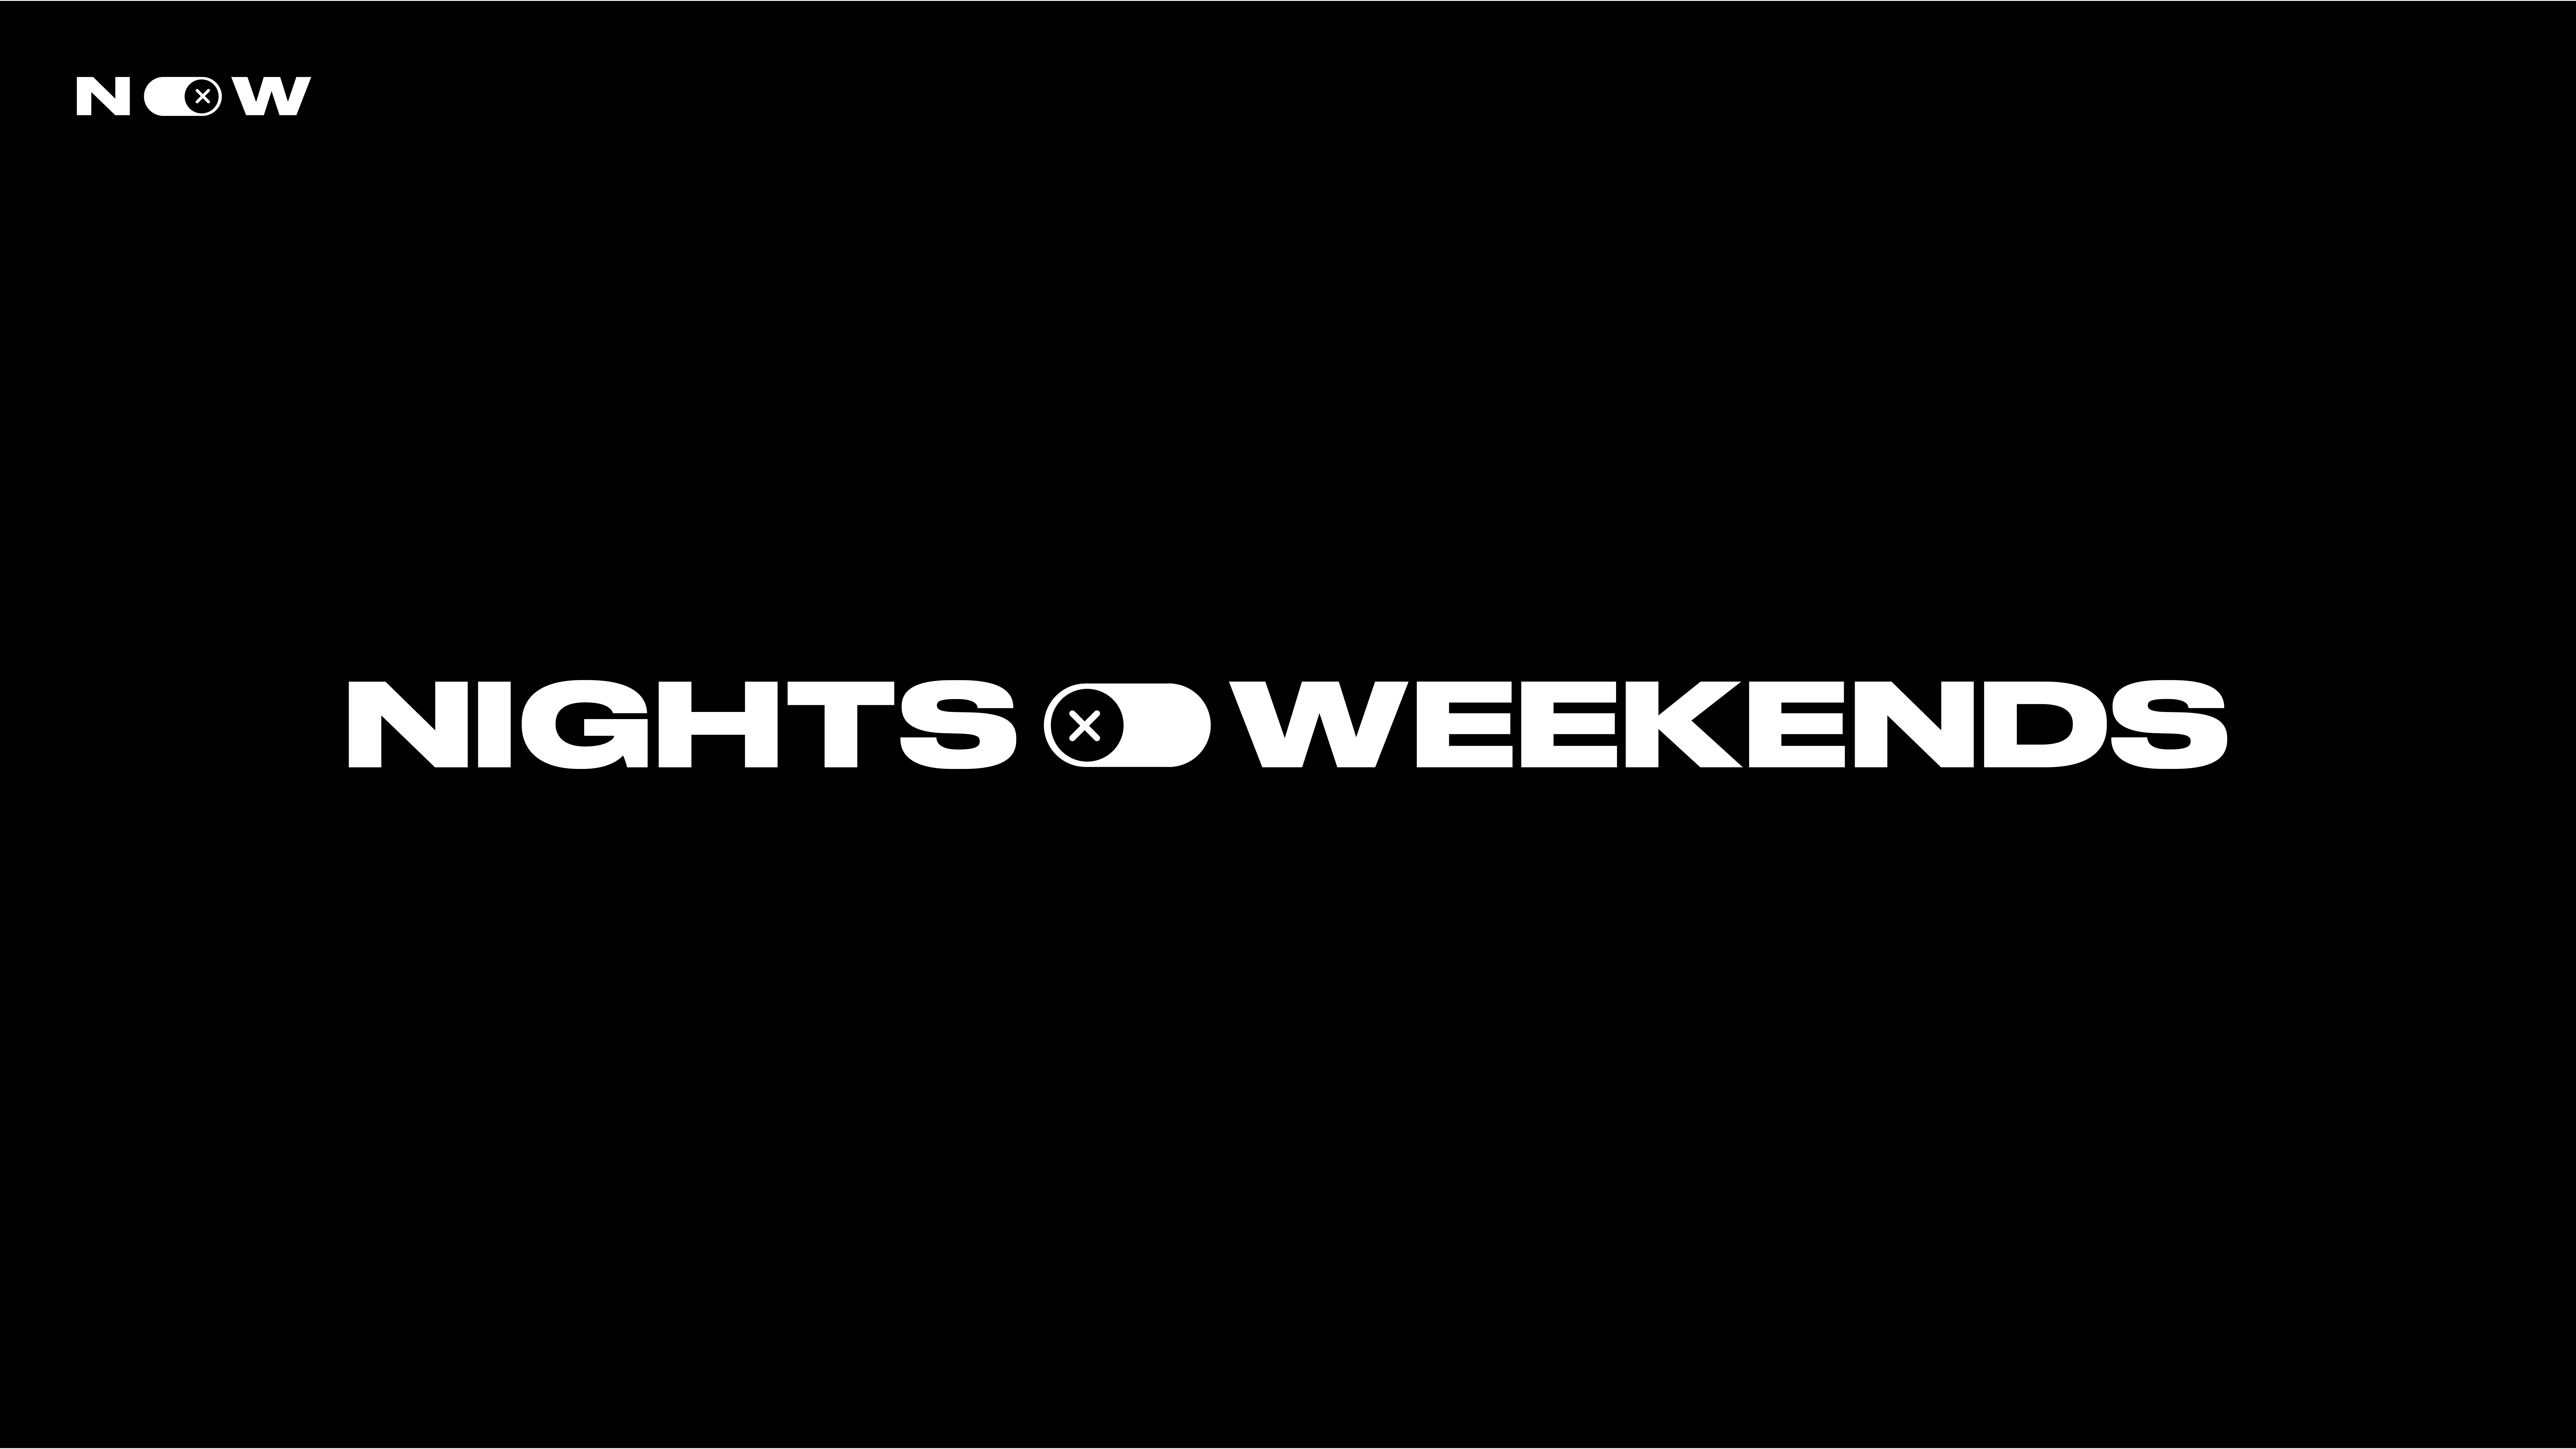 NightsxWeekends-3